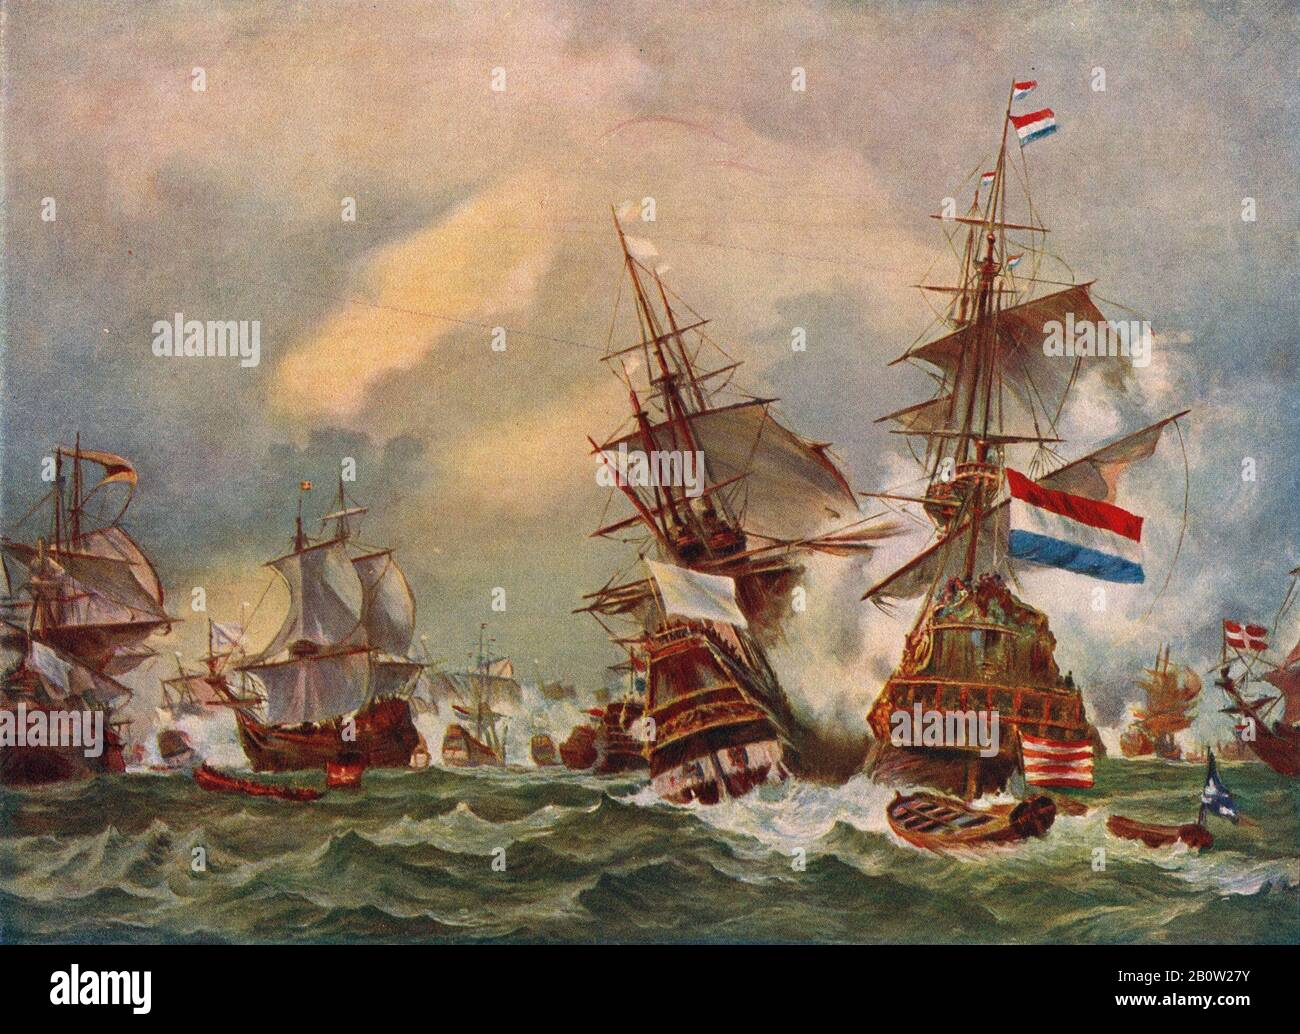 A reprodution of the painting by Eugène Isabey, published circa 1915 of the Battle of Texel on 29 June 1694 during the Nine Years' War between Jean Bart the French naval commander and privateer and a Dutch fleet commanded by Hidde Sjoerds de Vries. Stock Photo